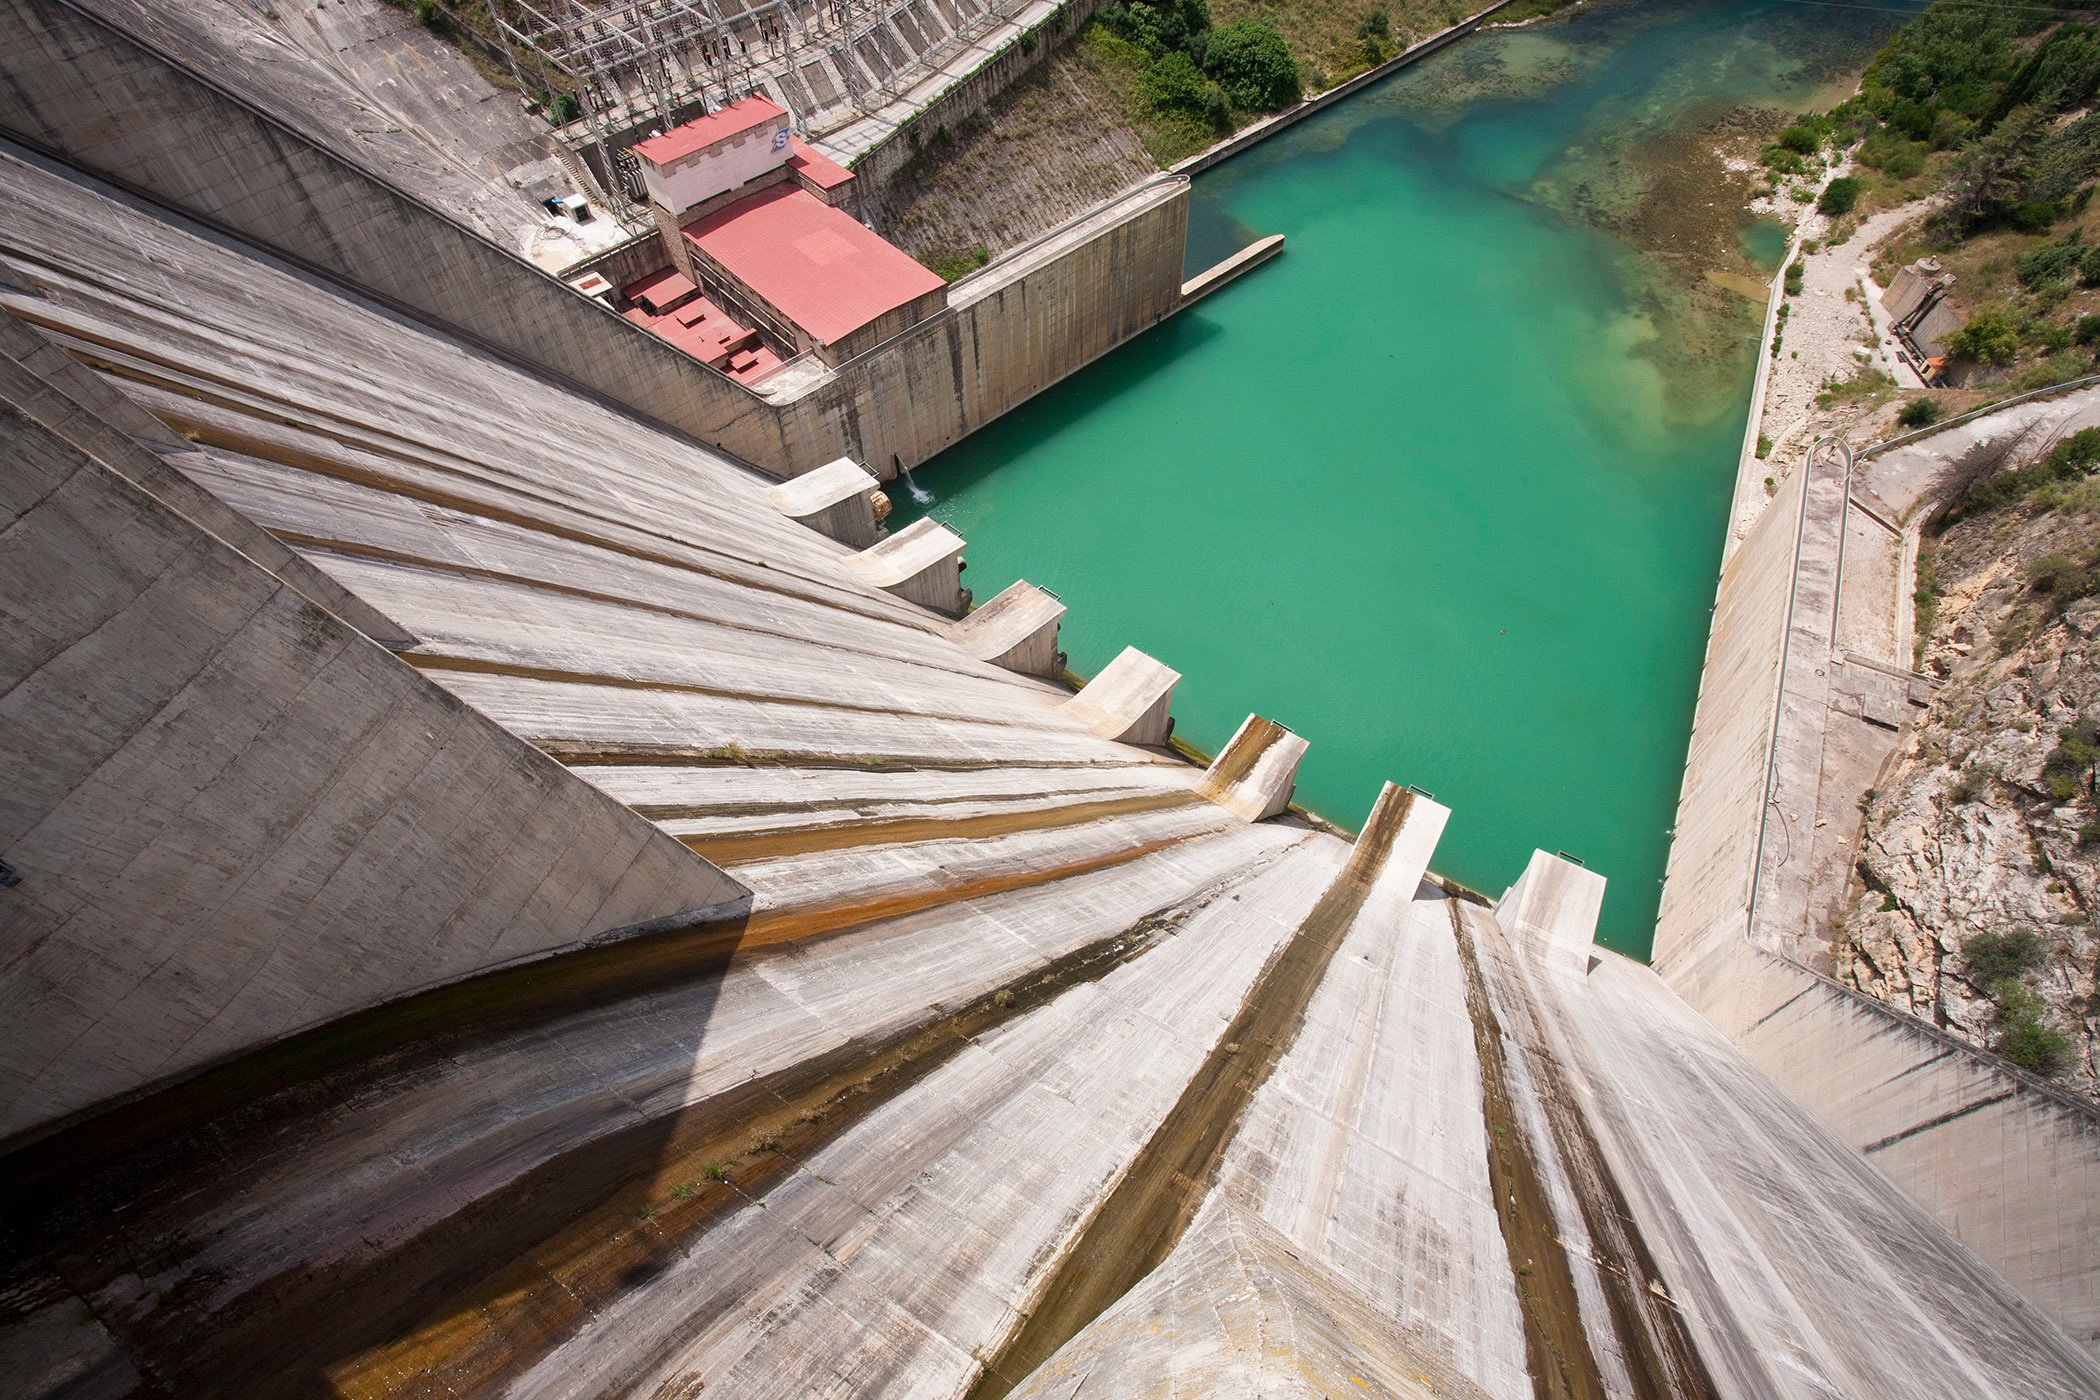 Threat - Hydropower dams block migration routes & natural flow of water sediment & nutrients © Global Warming Images_WWF.jpg1.jpg